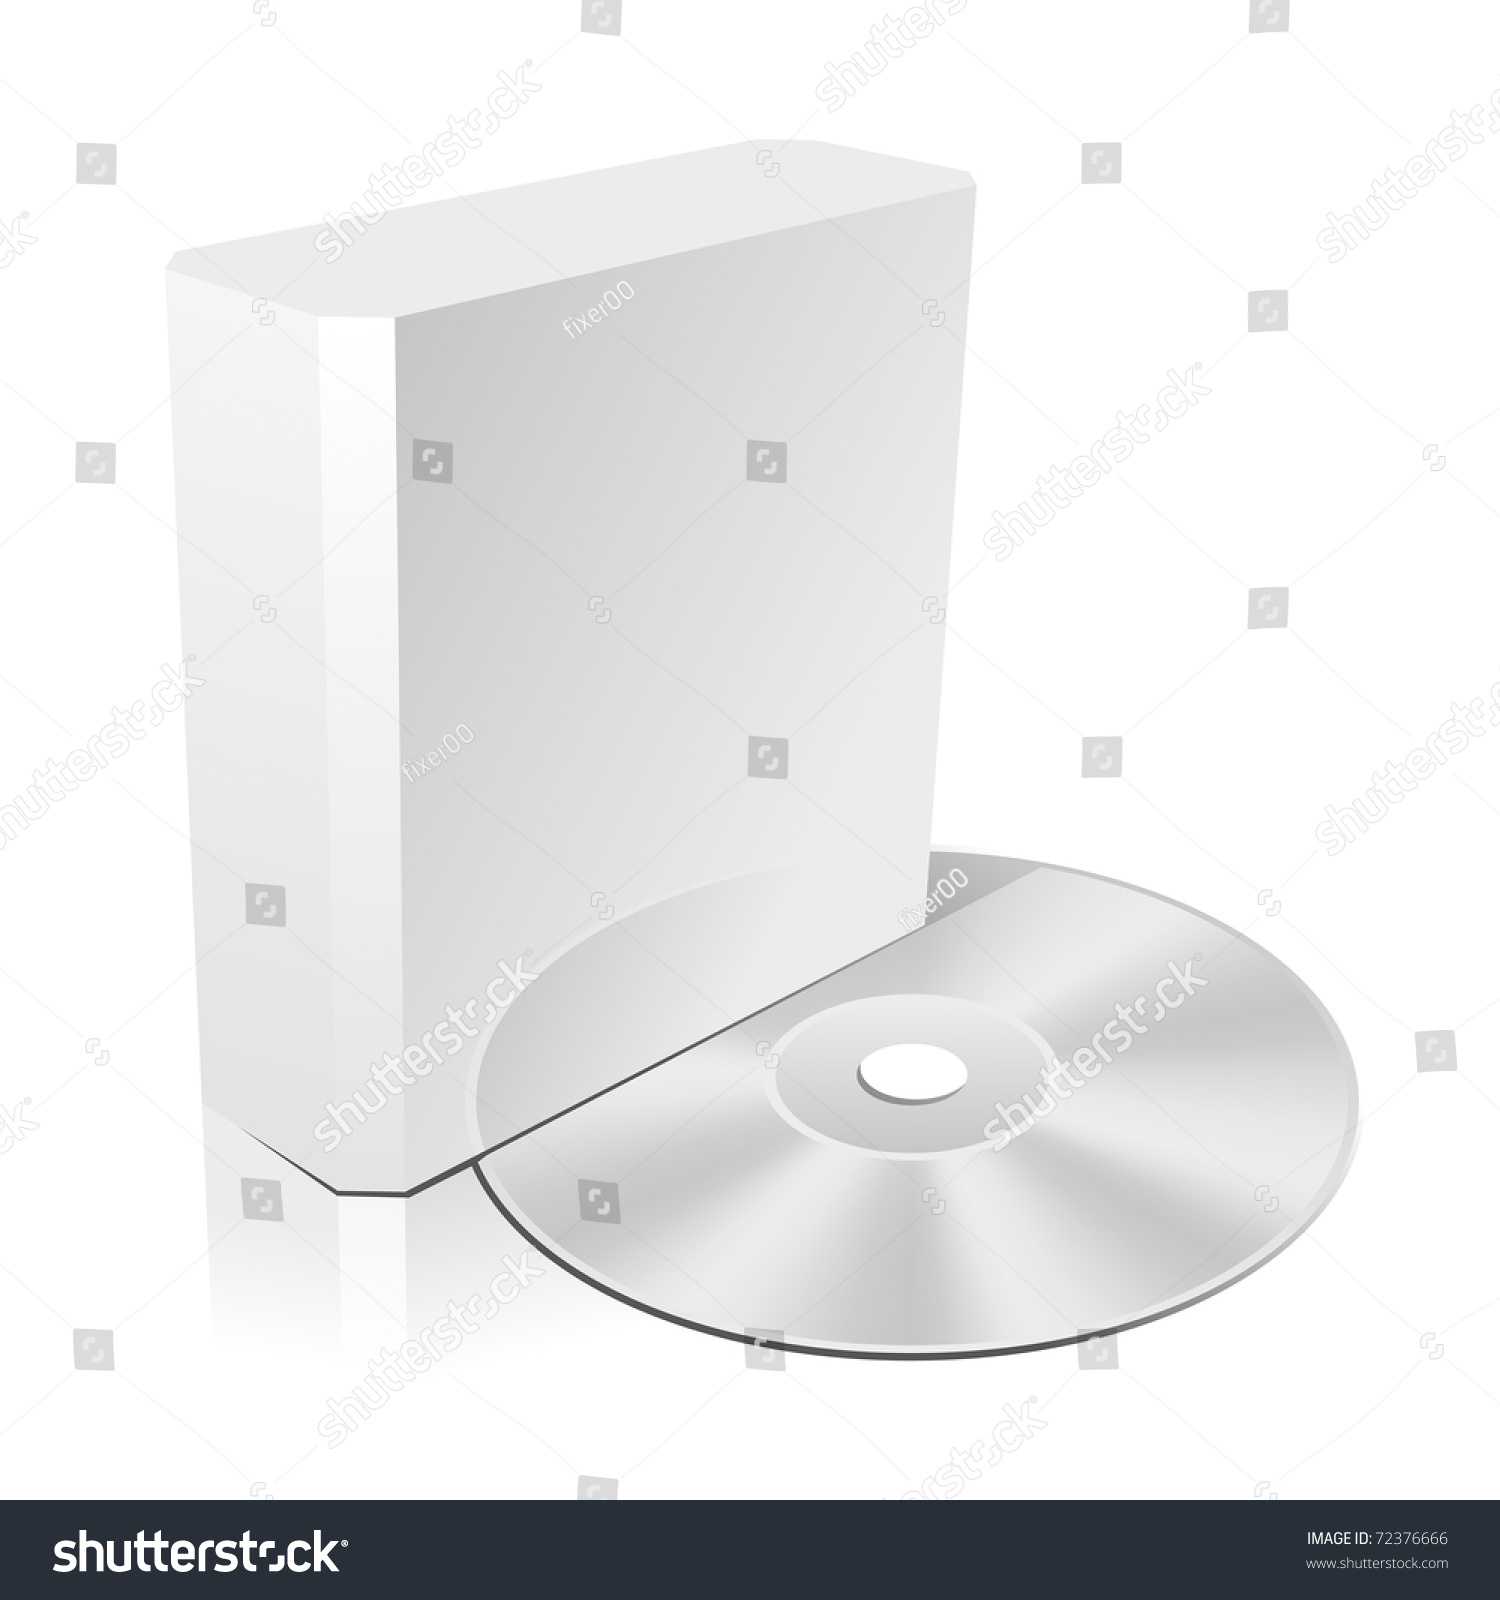 Software Cd Box Blank Template. Vector Illustration (Eps 8 ...